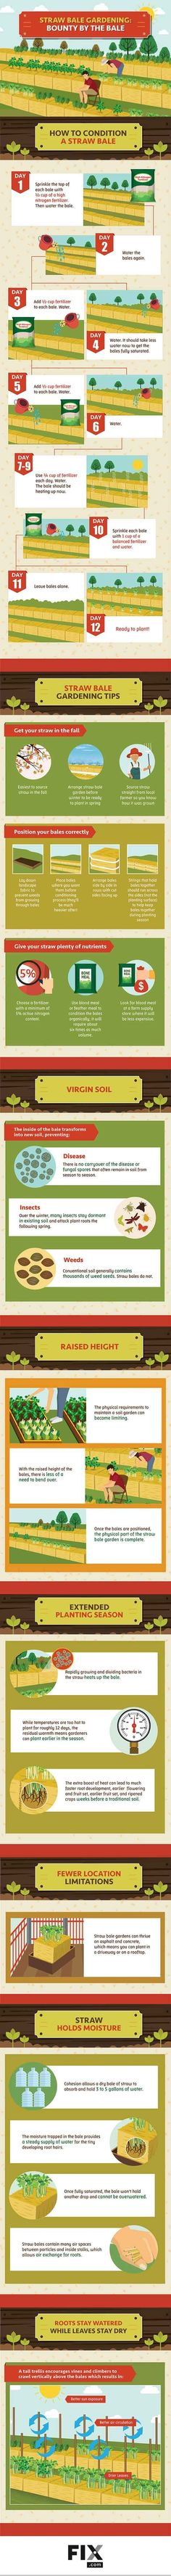 Infographic | Straw Bale Garden Tips